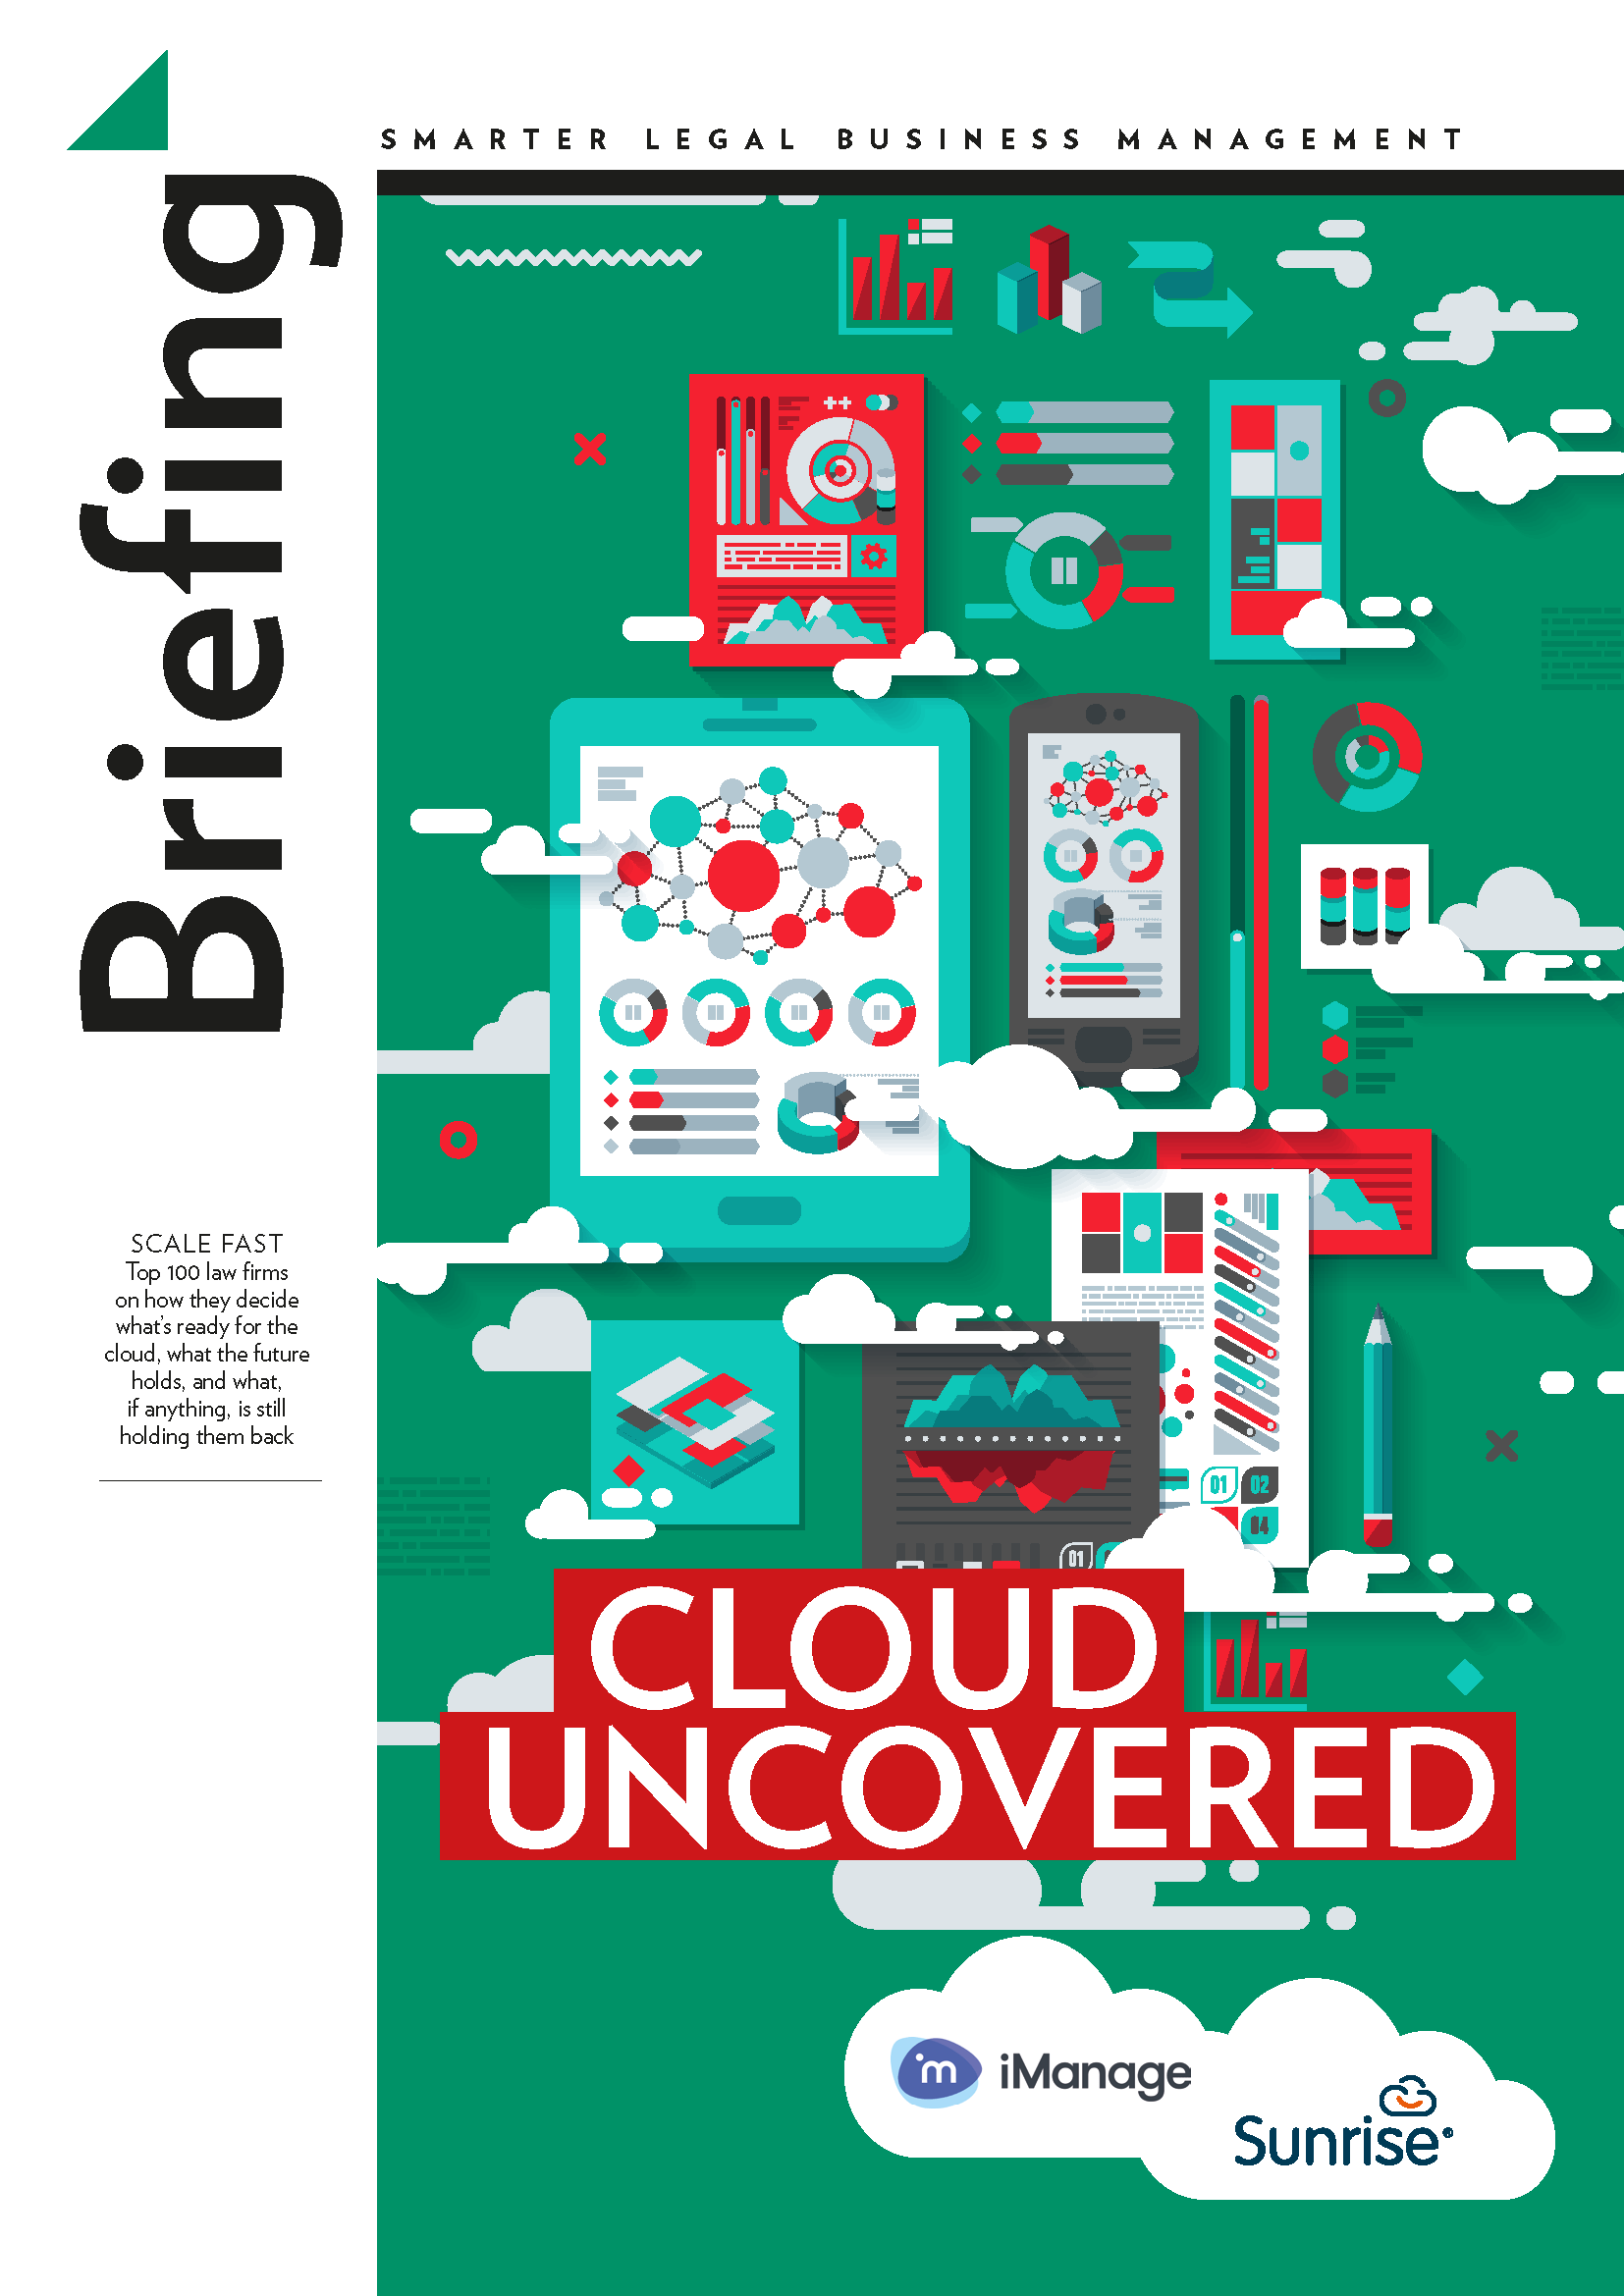 Cloud uncovered